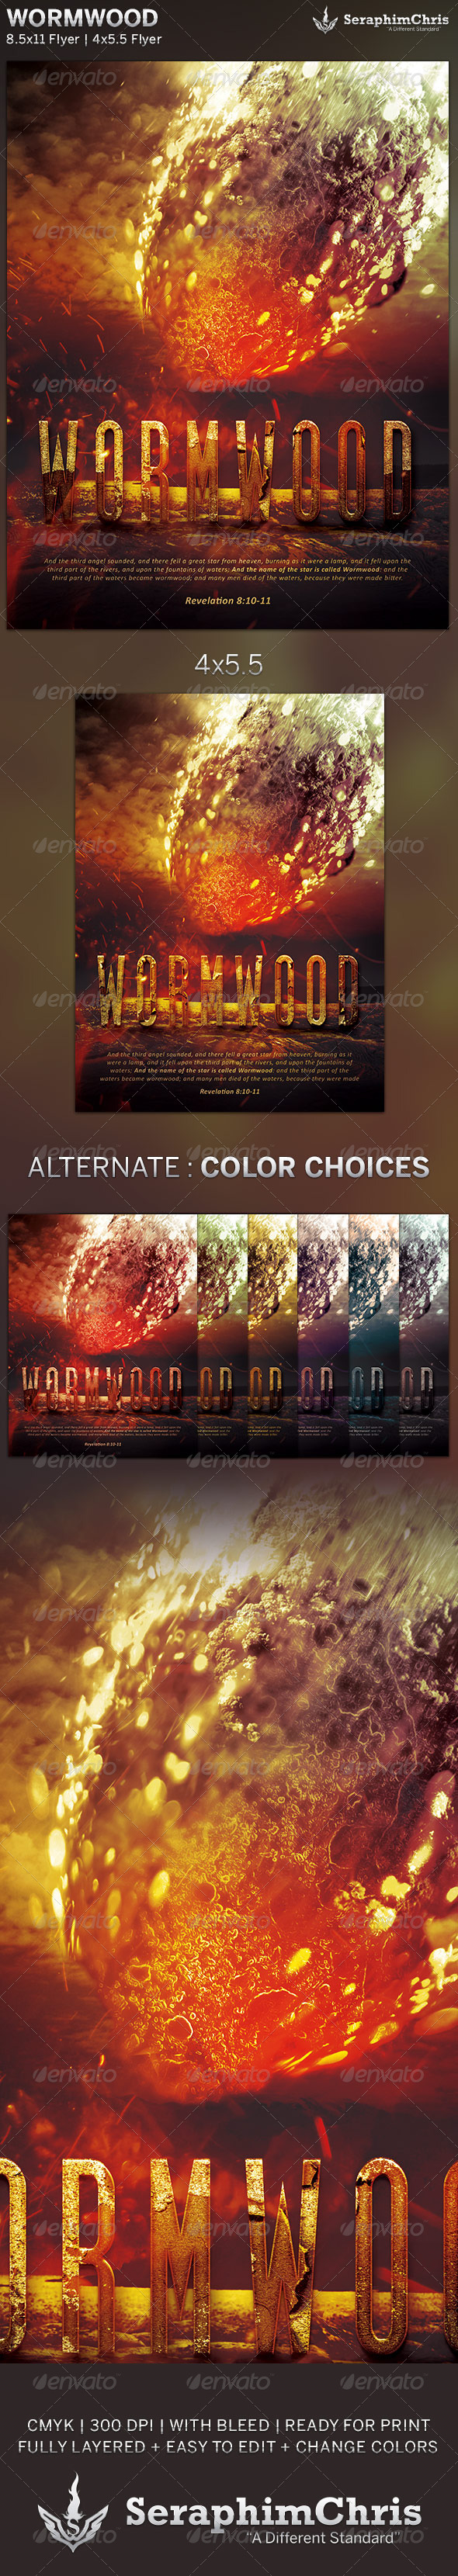 Wormwood: Church Flyer Template - Church Flyers